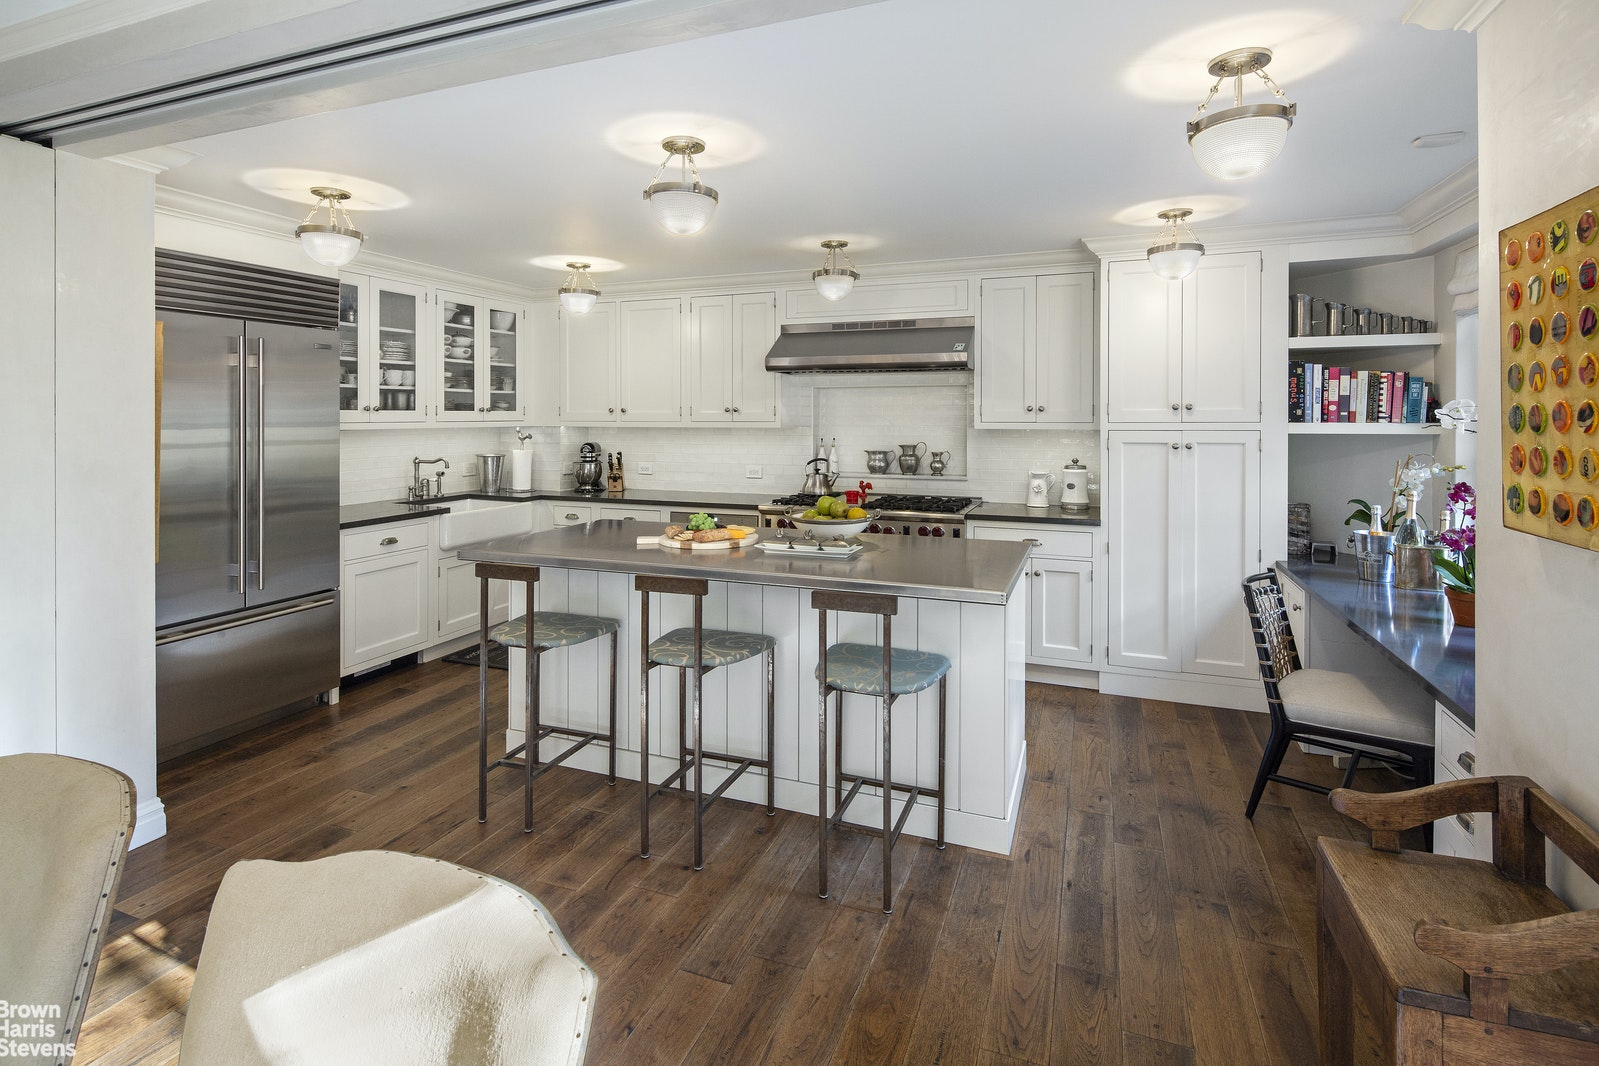 420 East 72nd Street 1h/2h, Upper East Side, NYC, 10021, $4,250,000, Property For Sale, Halstead Real Estate, Photo 2